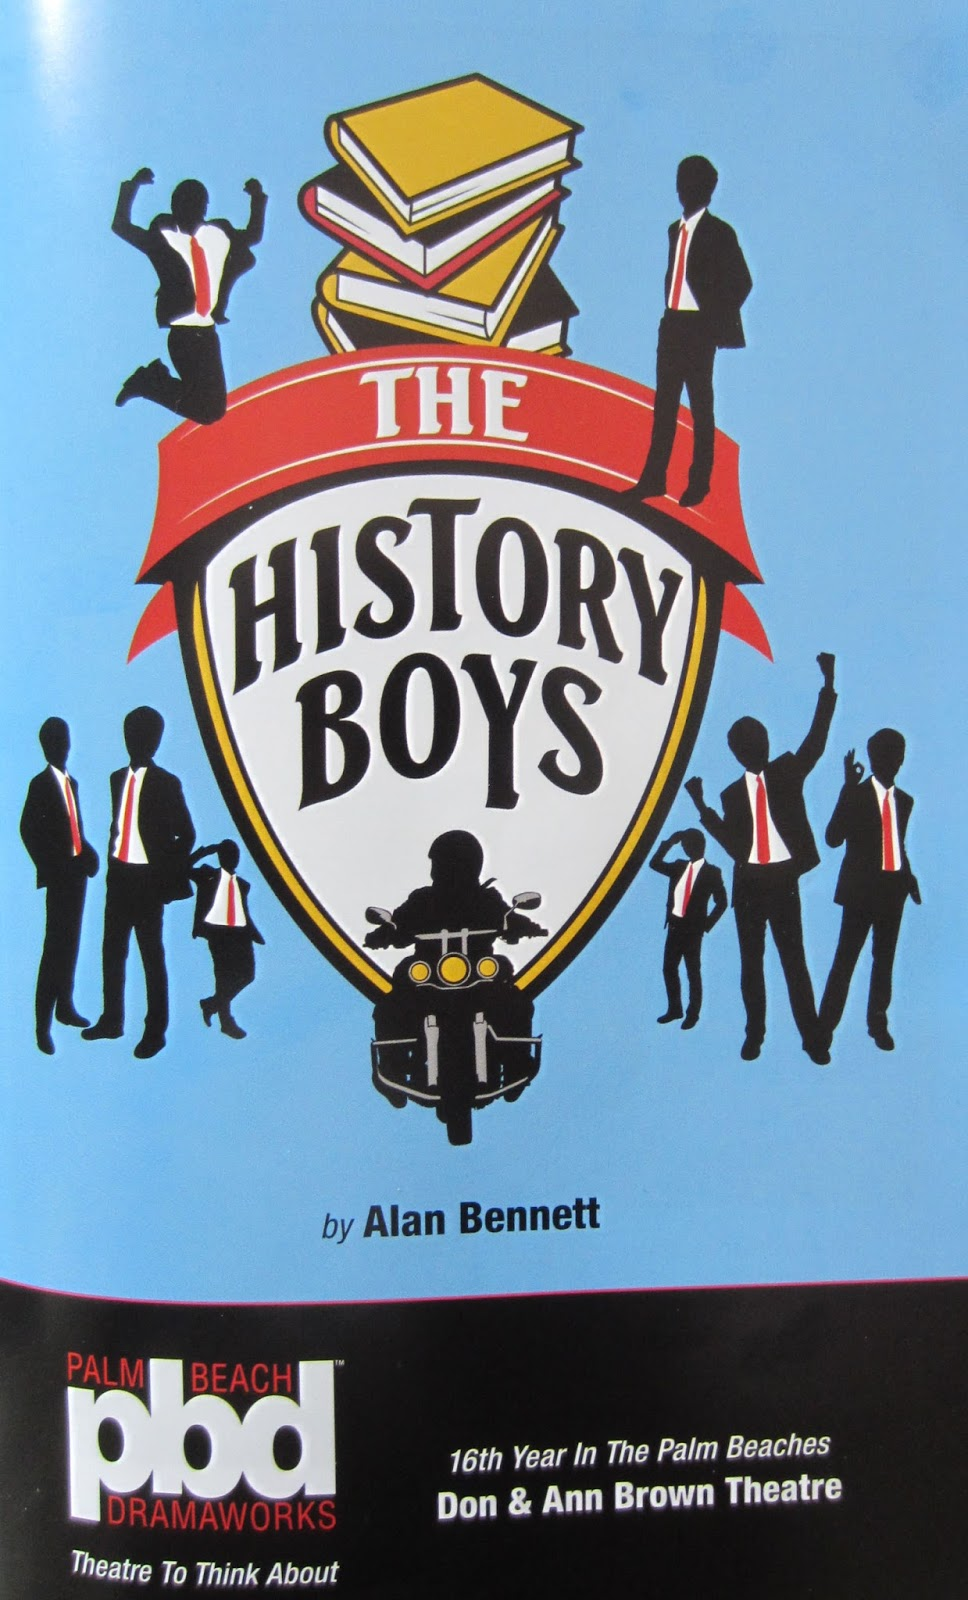 coursework history boys Bright and rebellious young men band together in secrecy to change the course of american history bright and rebellious young men band together in secrecy to change the course of american history.